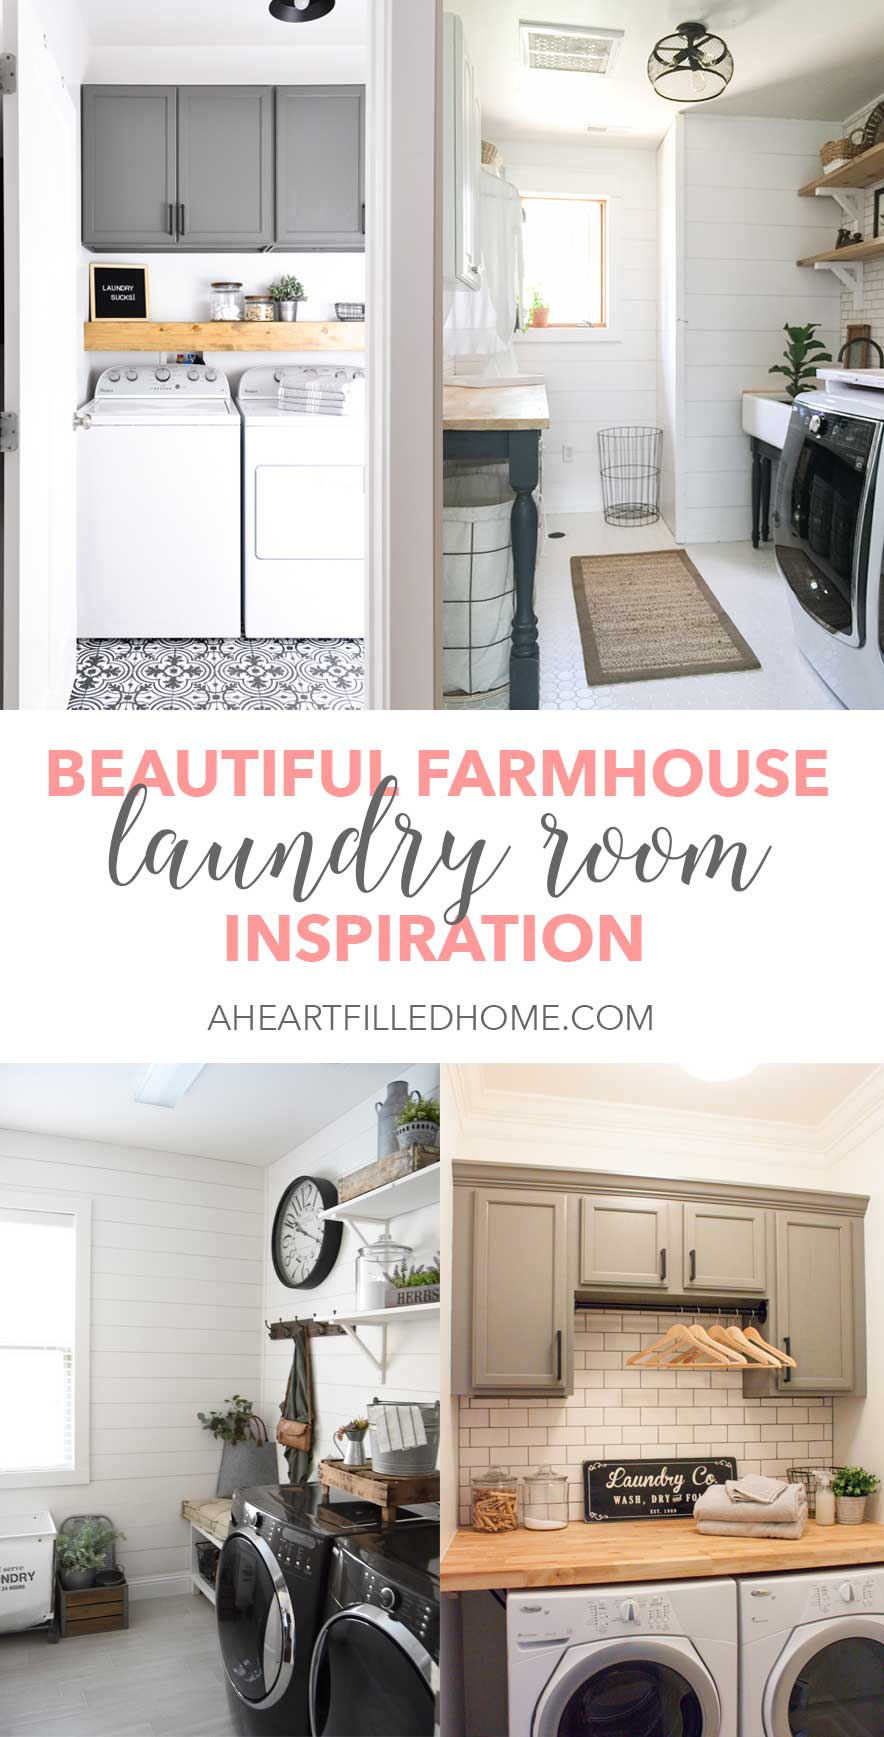 Beautiful Farmhouse Laundry Room Inspiration From Aheartfilledhome